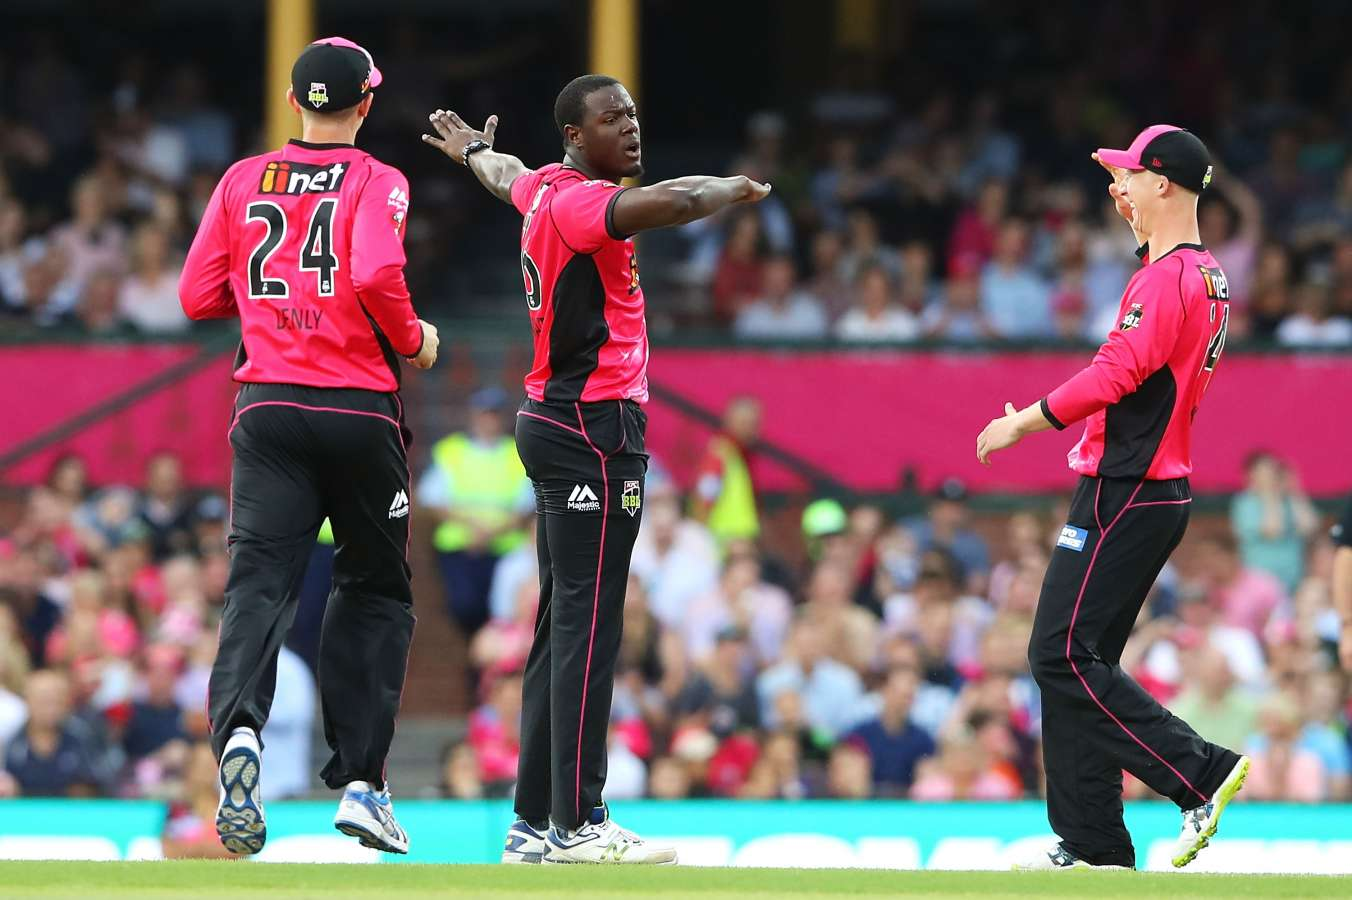 BBL Preview: Melbourne Stars vs Sydney Sixers